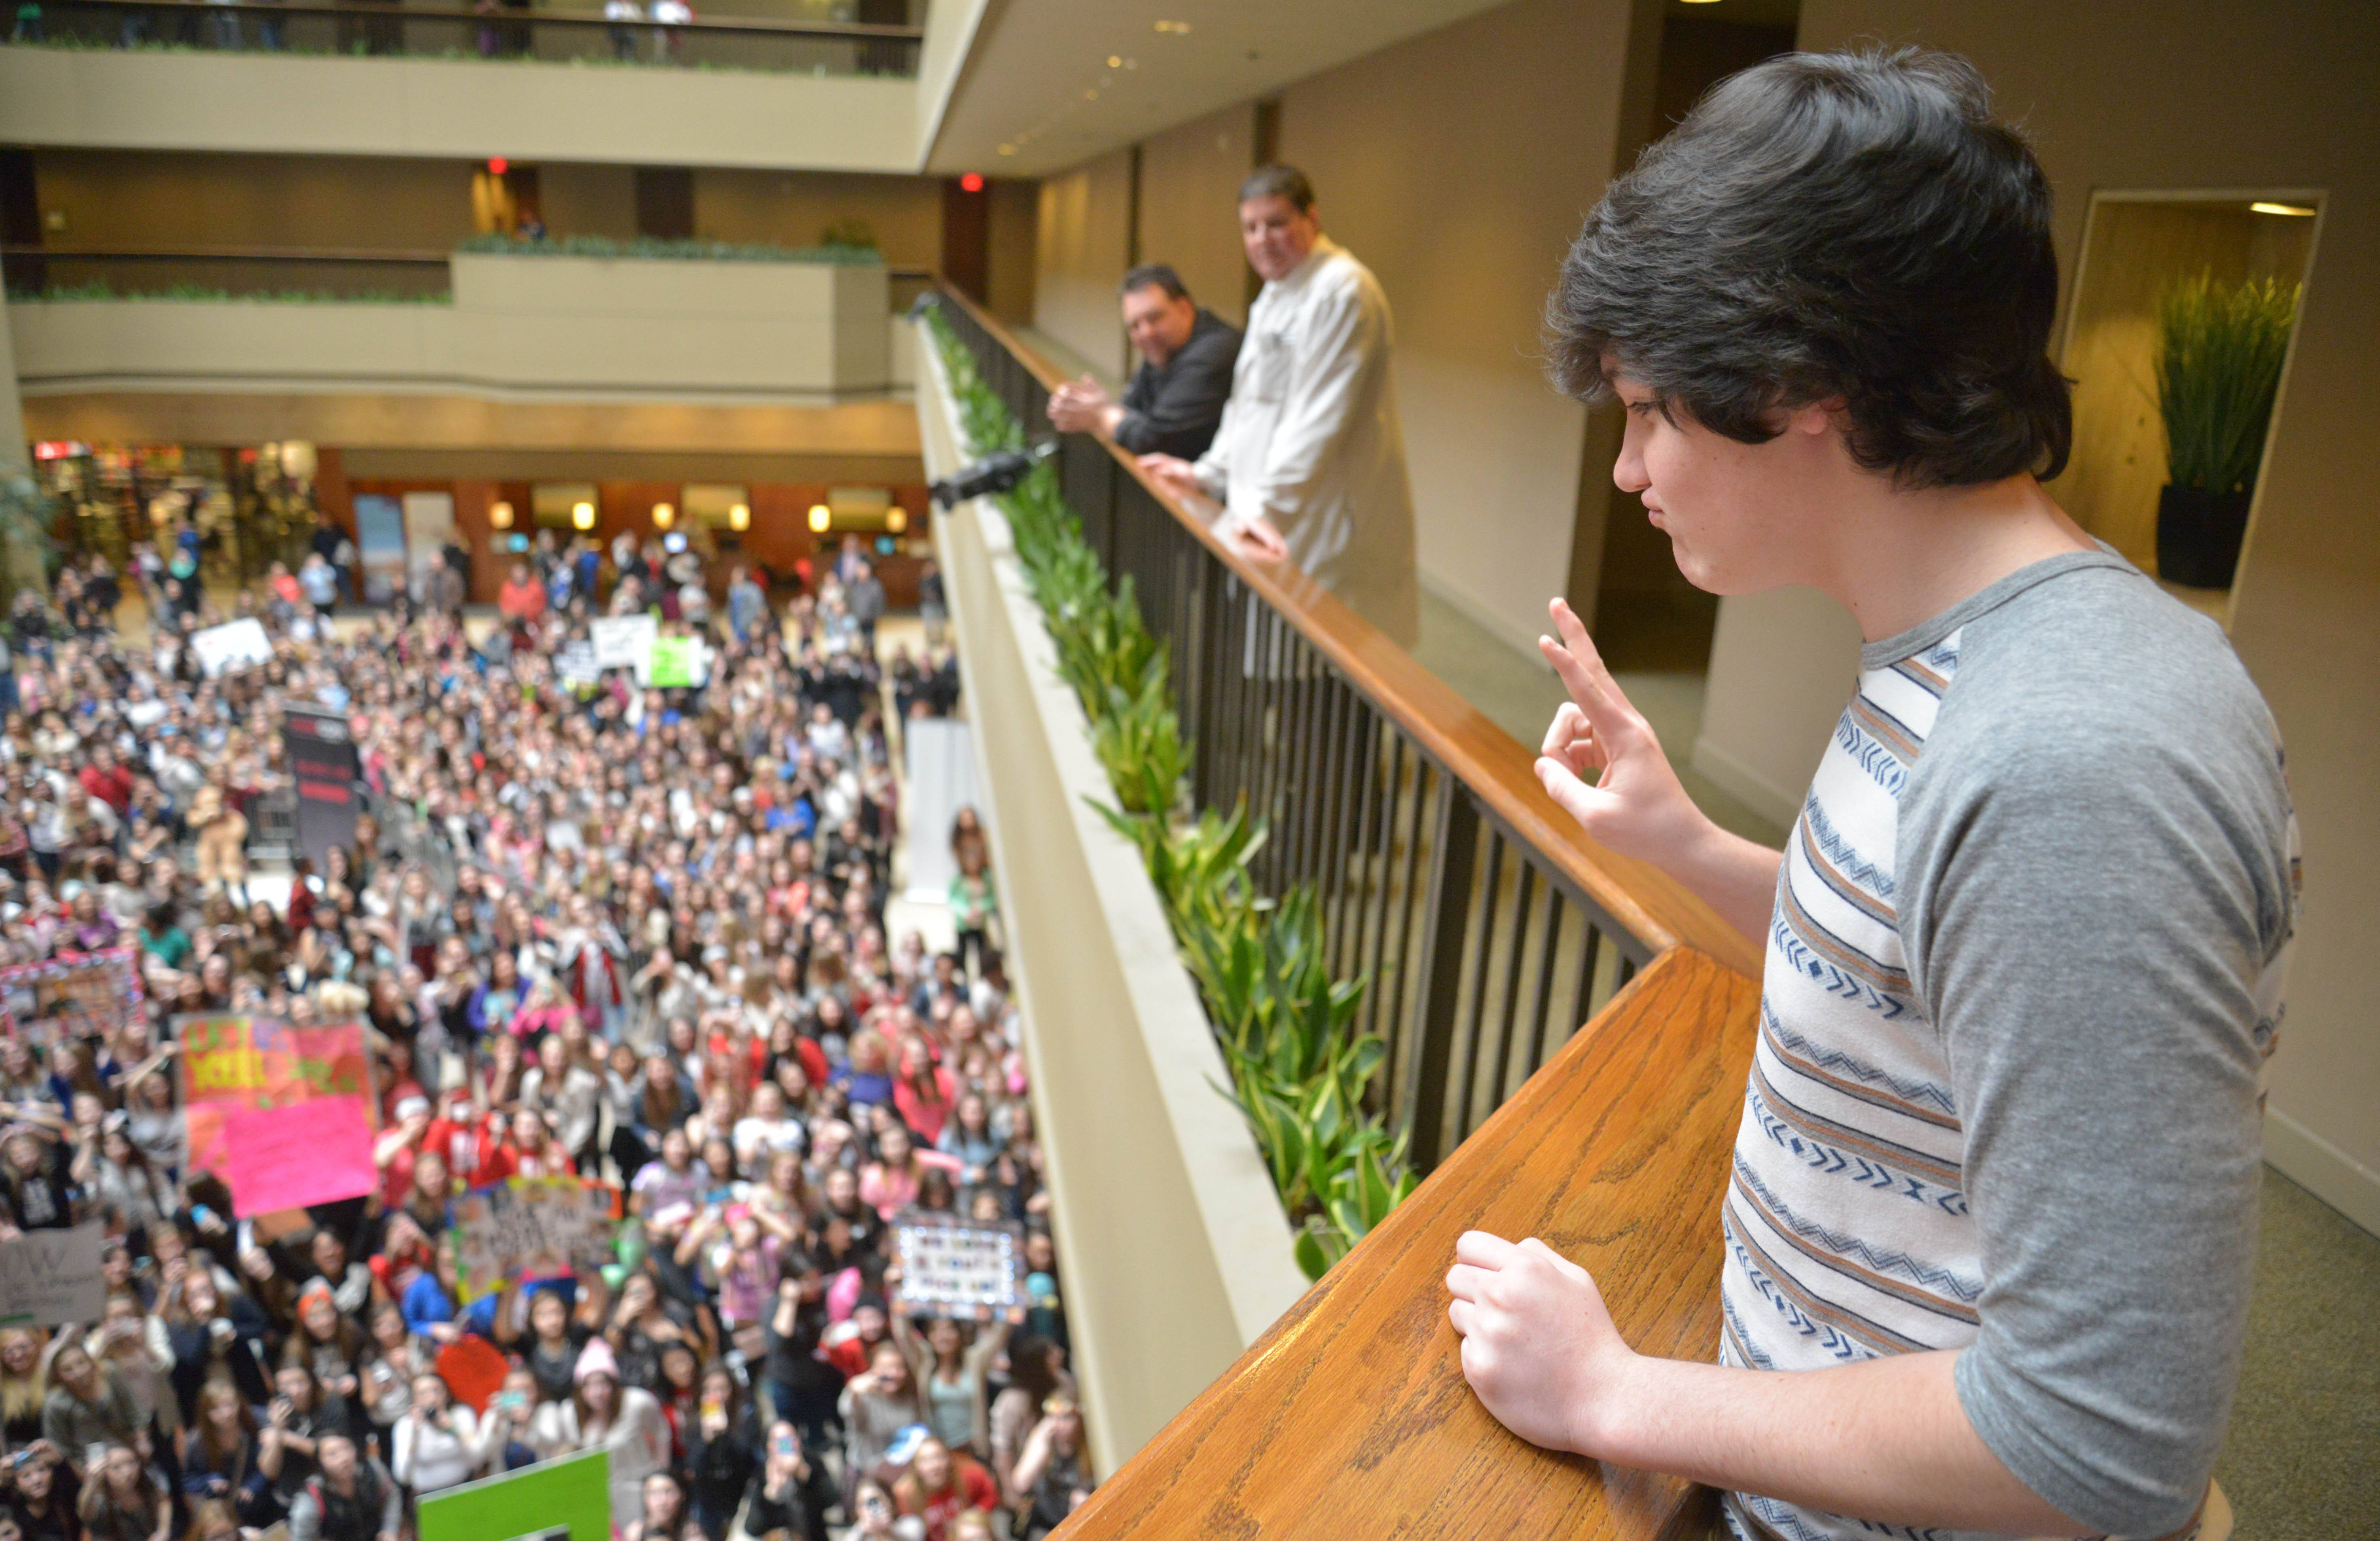 Aaron Carpenter, 15, waves to hundreds of screaming girls at MAGCON in Itasca Saturday. The teenage boys who have become social media stars with their 6-second videos on Vine were at the Westin Chicago in Itasca to meet their fans.